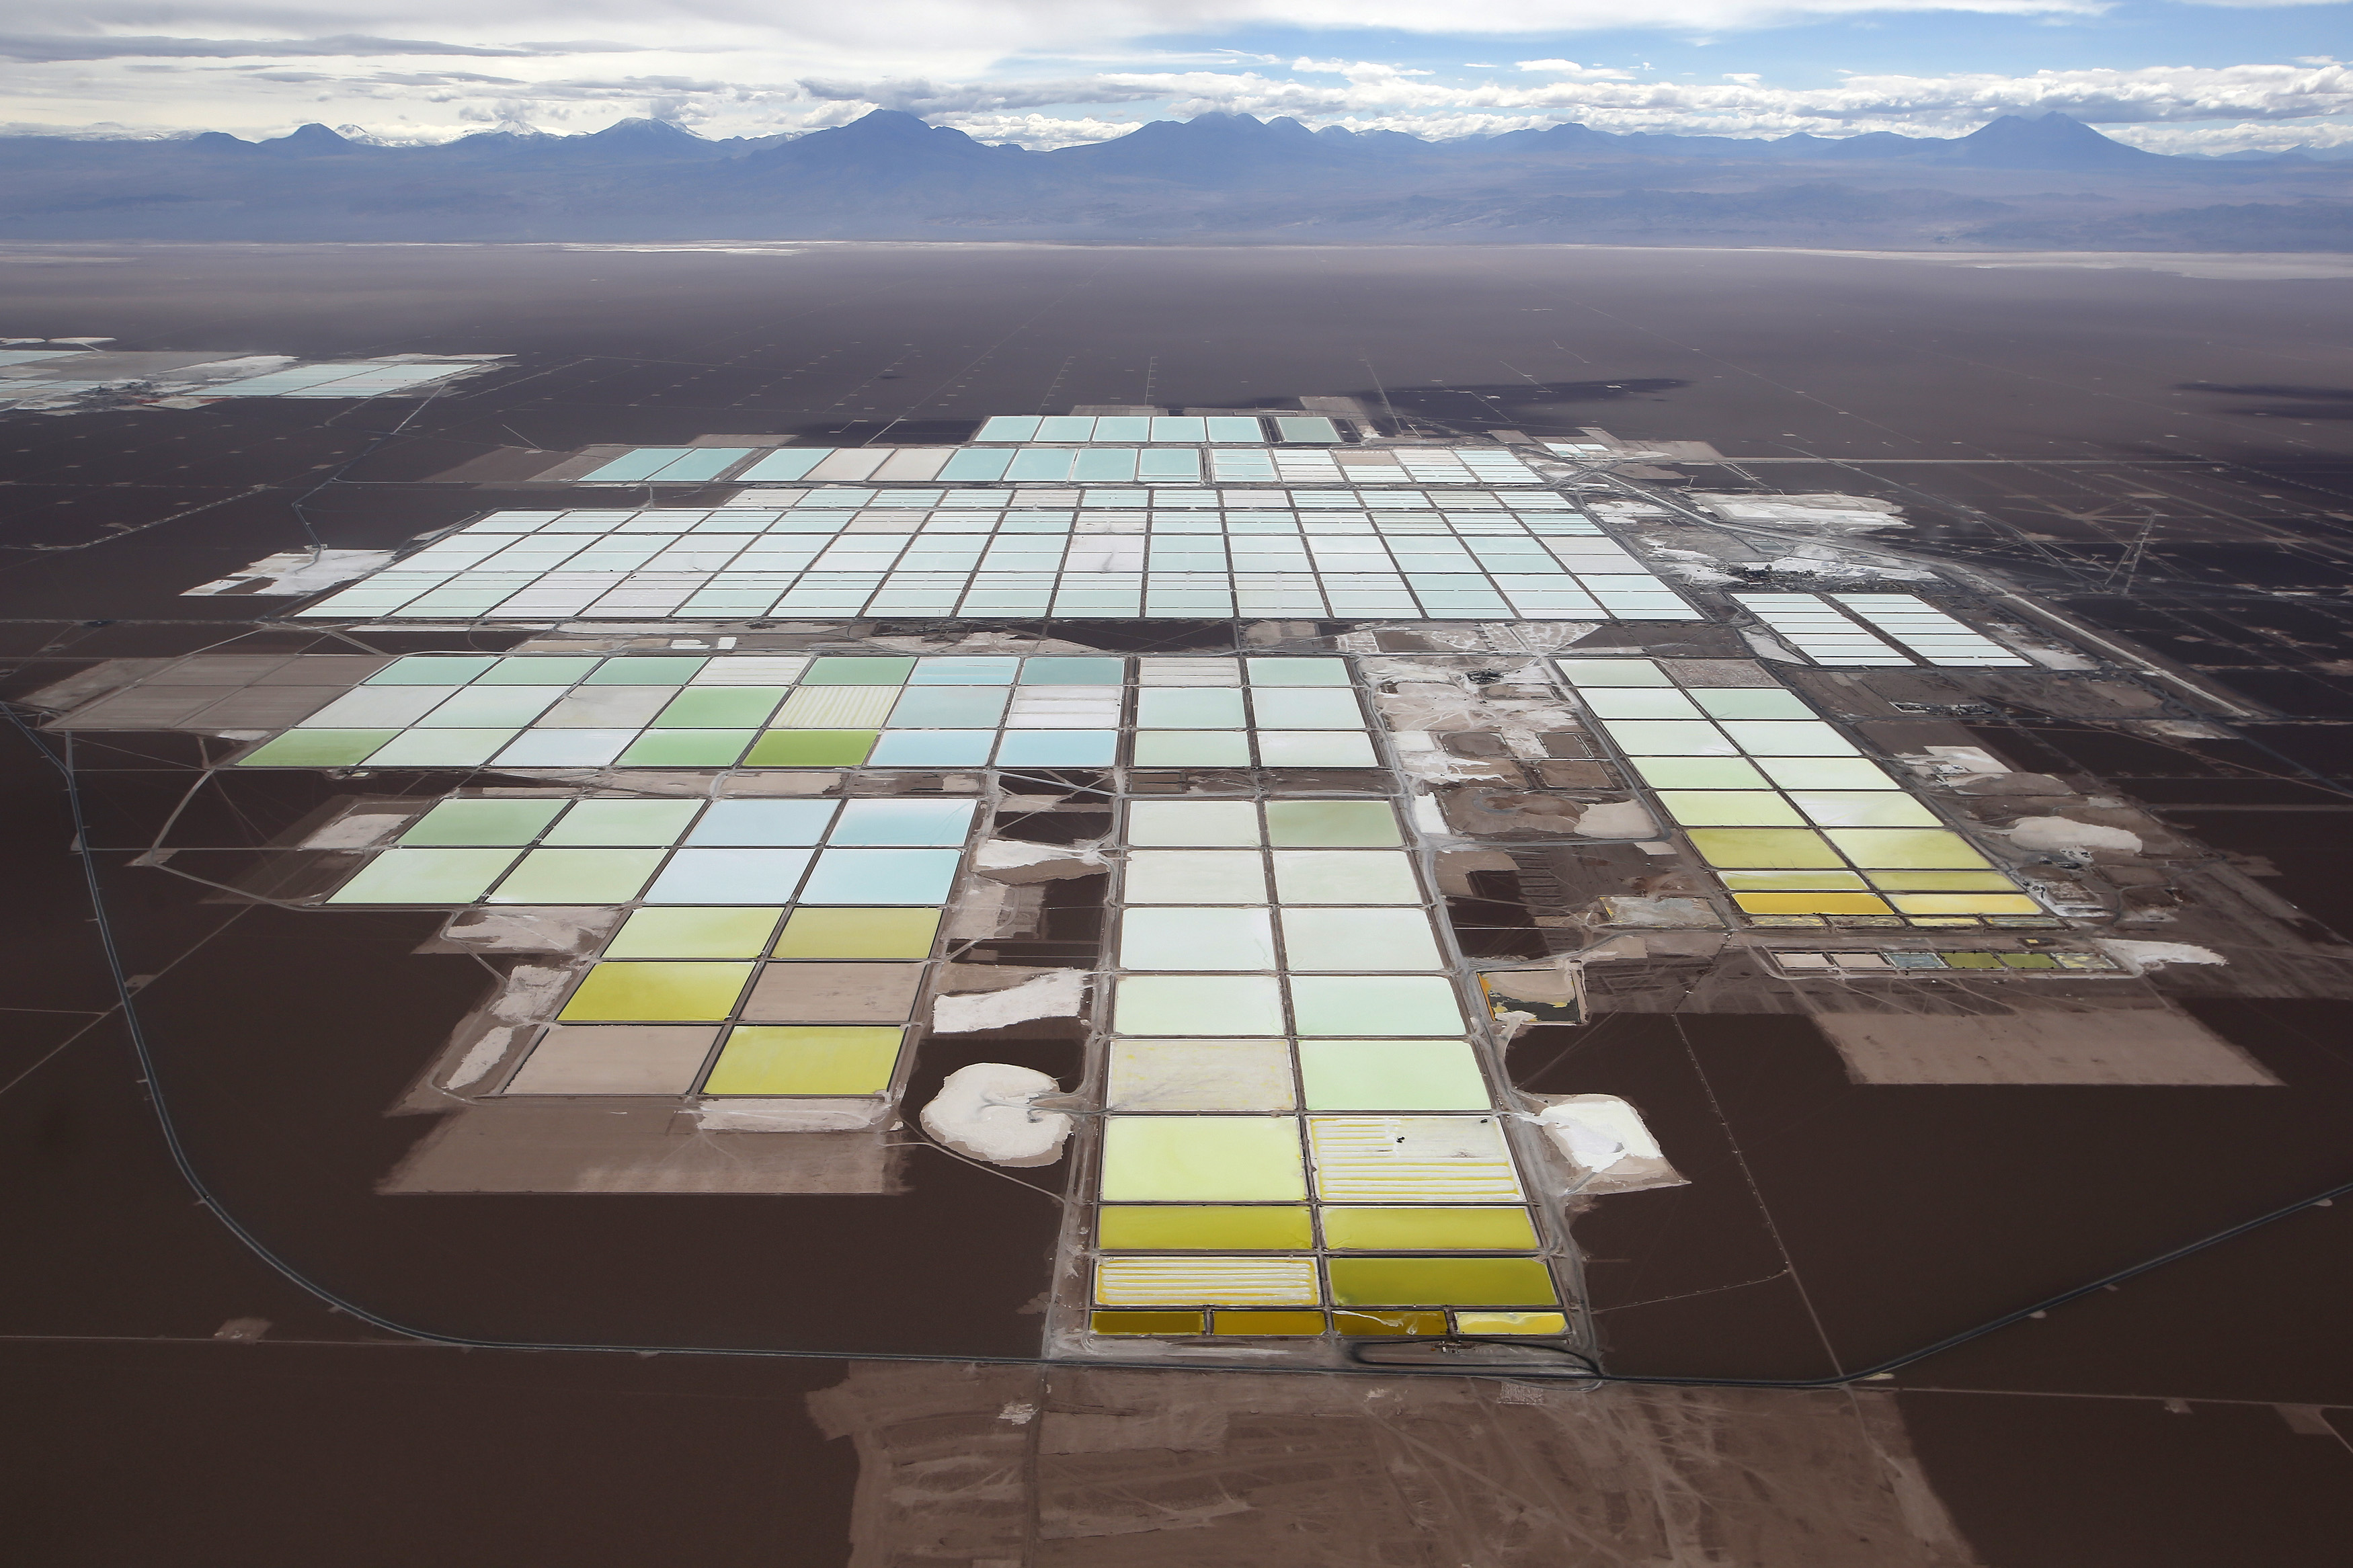 An aerial view shows the brine pools and processing areas of the SQM lithium mine on the Atacama salt flat, in the Atacama desert of northern Chile